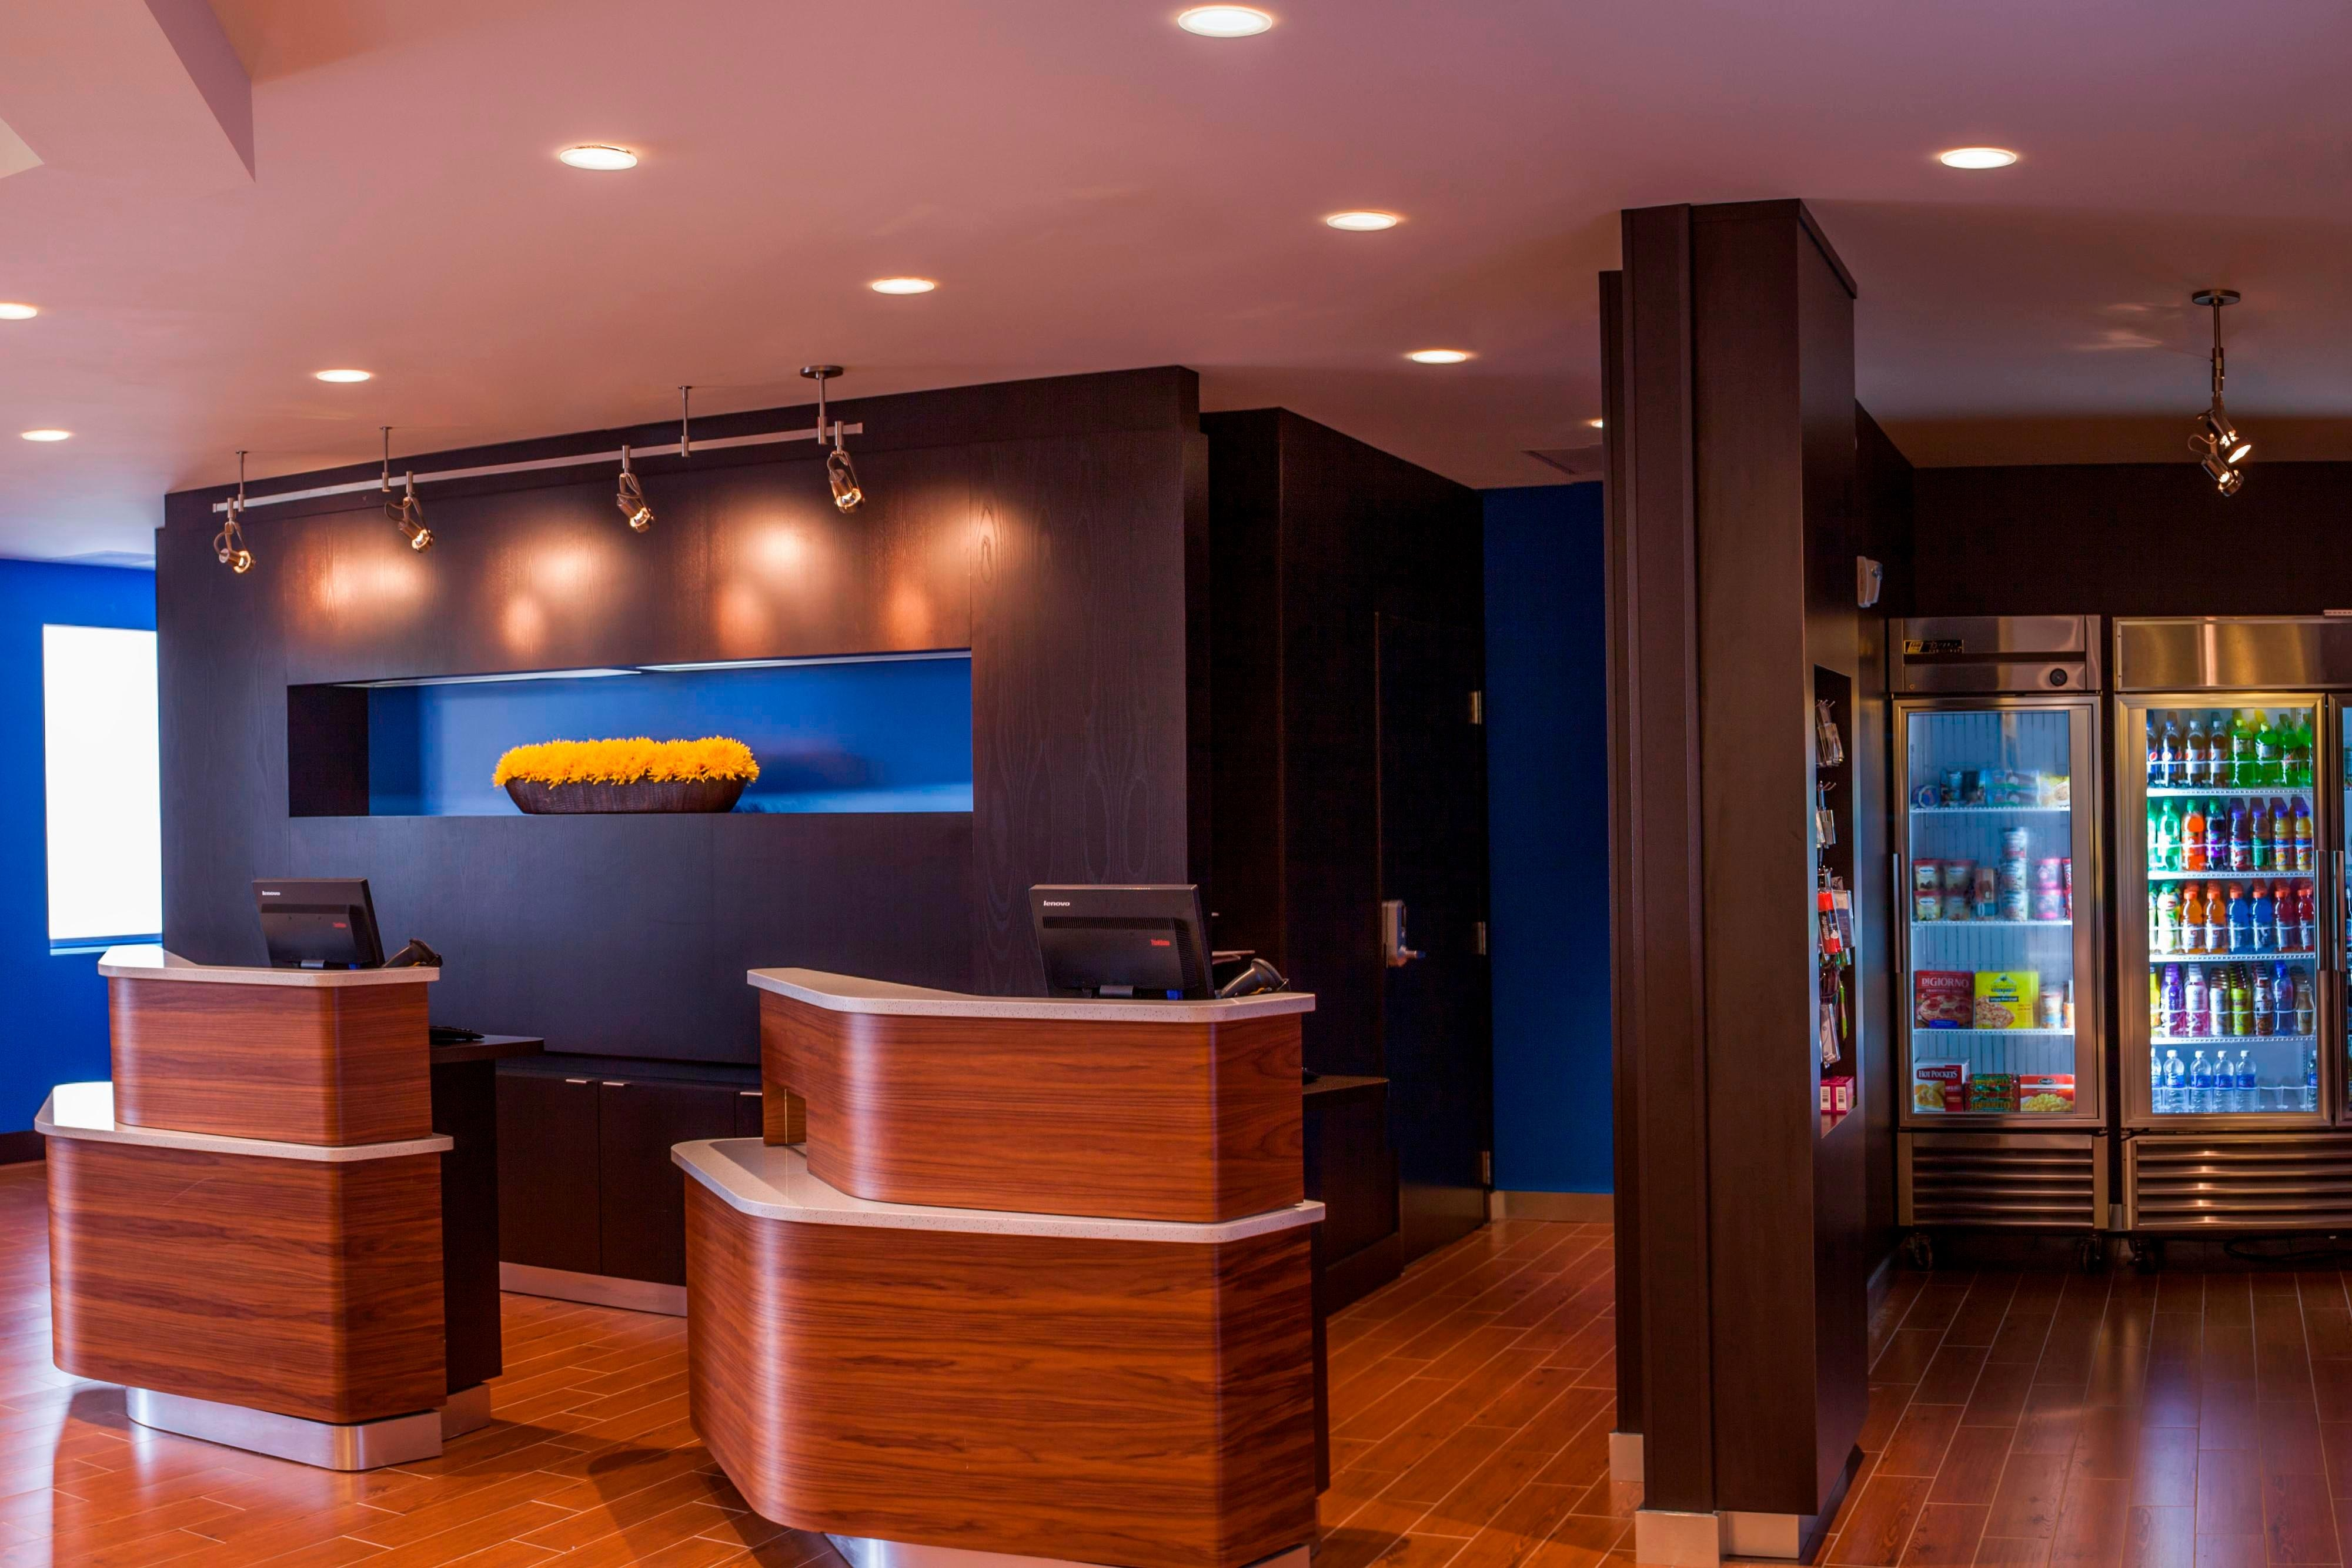 Airport Hotels in Charlotte, NC